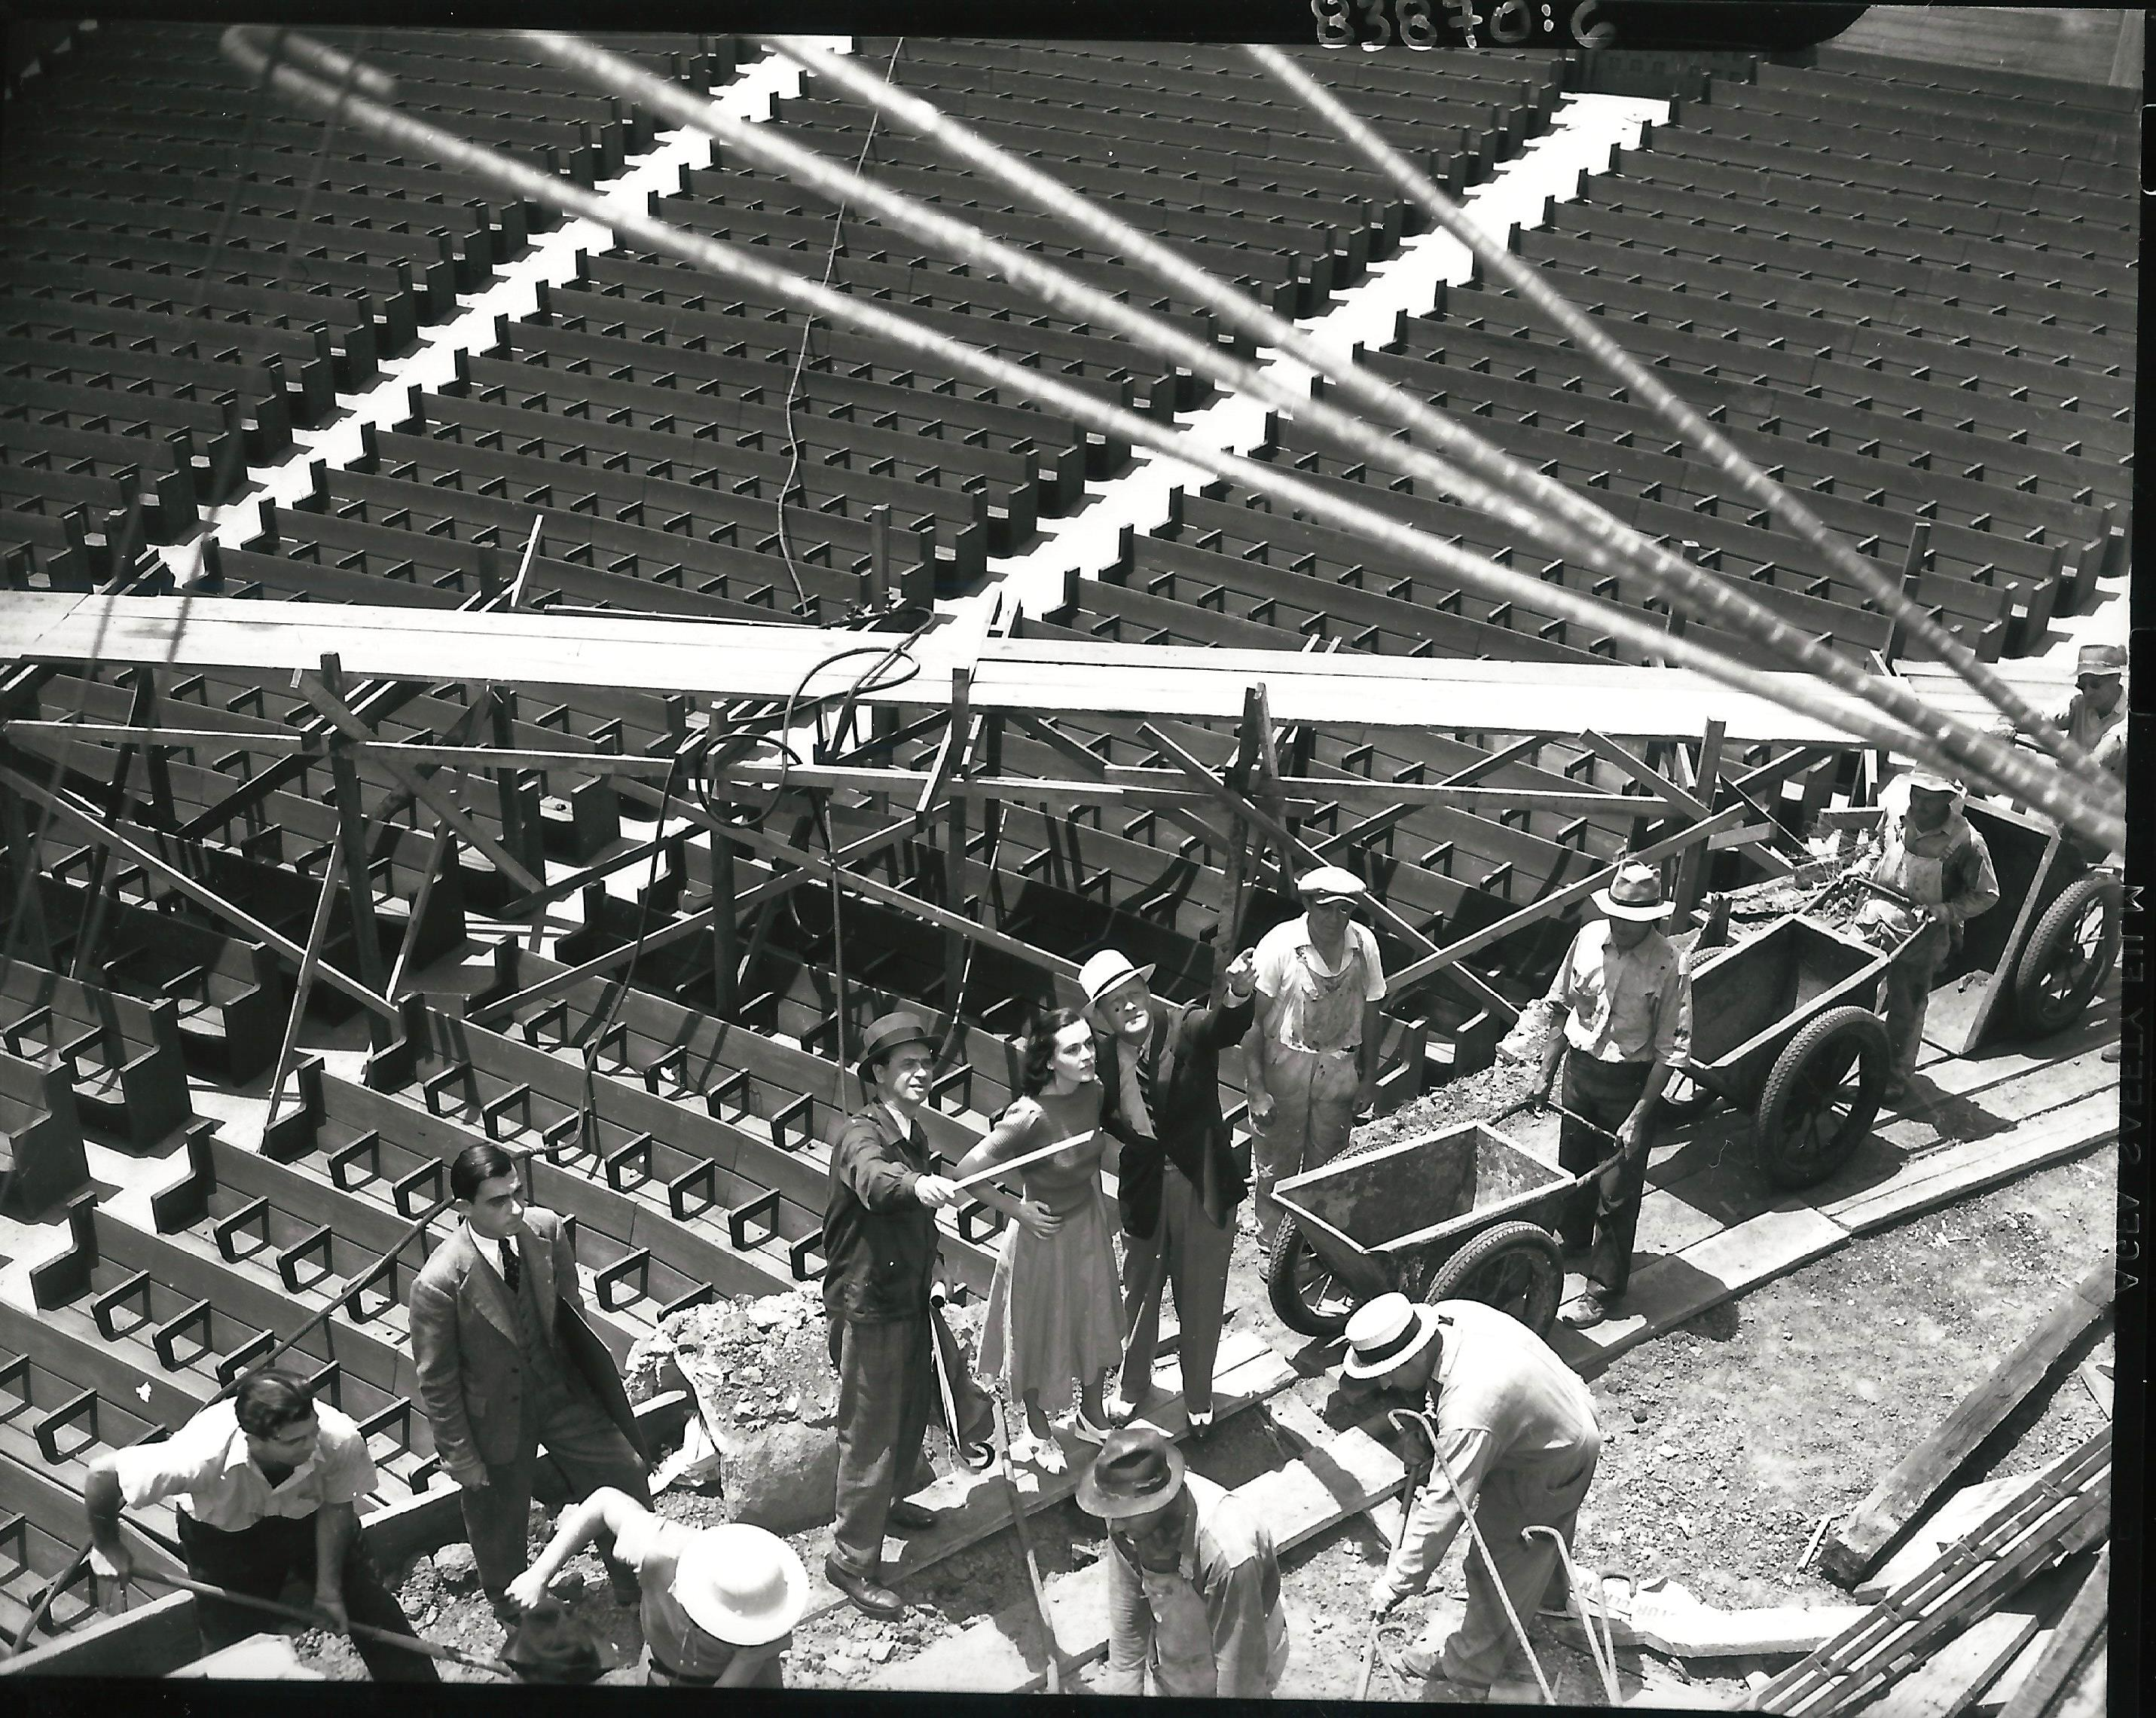 Remisoff (on the left, with pointer) oversees construction on stage right. <br> Photo courtesy of Otto Rothschild Collection, The Music Center